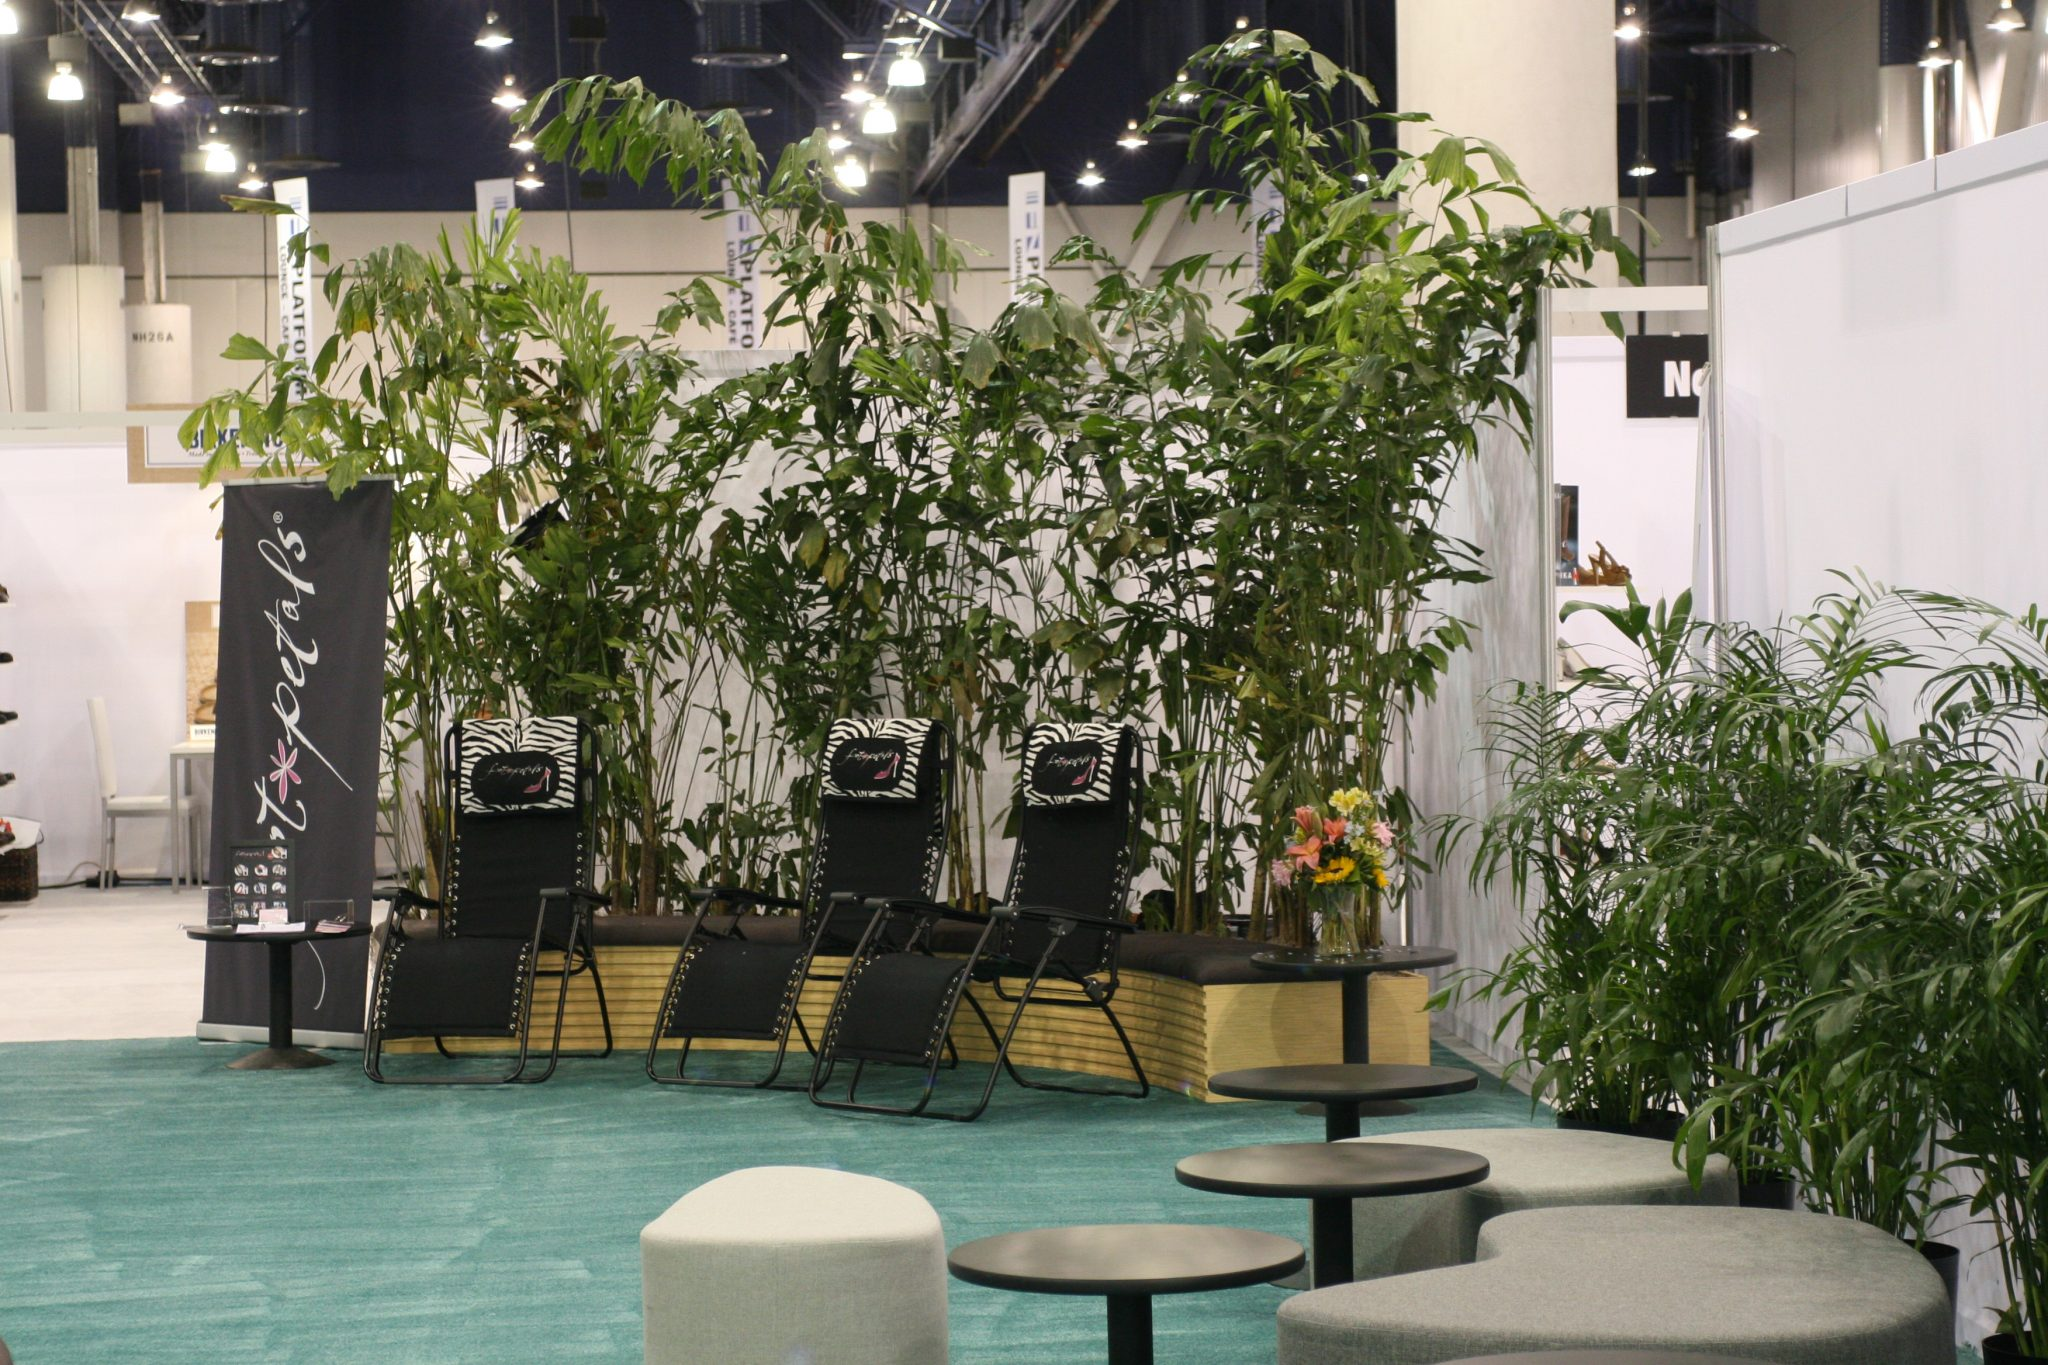 Plant wall for las vegas conferences.